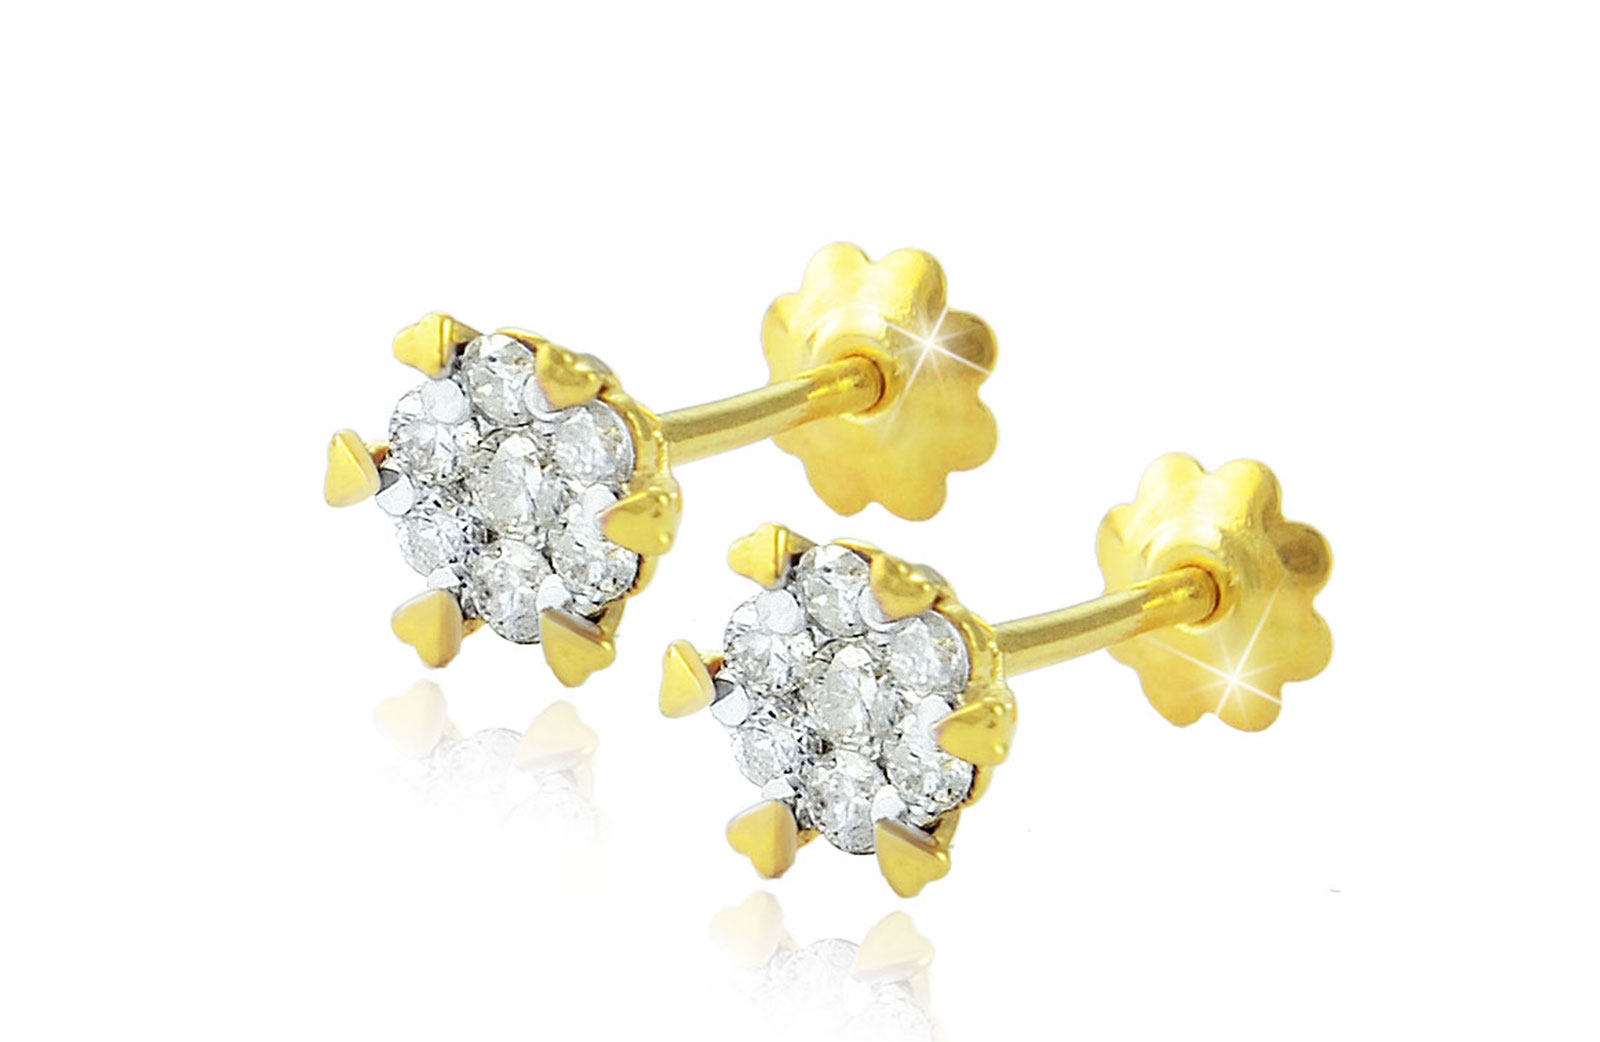 Vera Perla 18K Solid Gold 0.22Cts Diamonds Hearts Solitaire Earrings